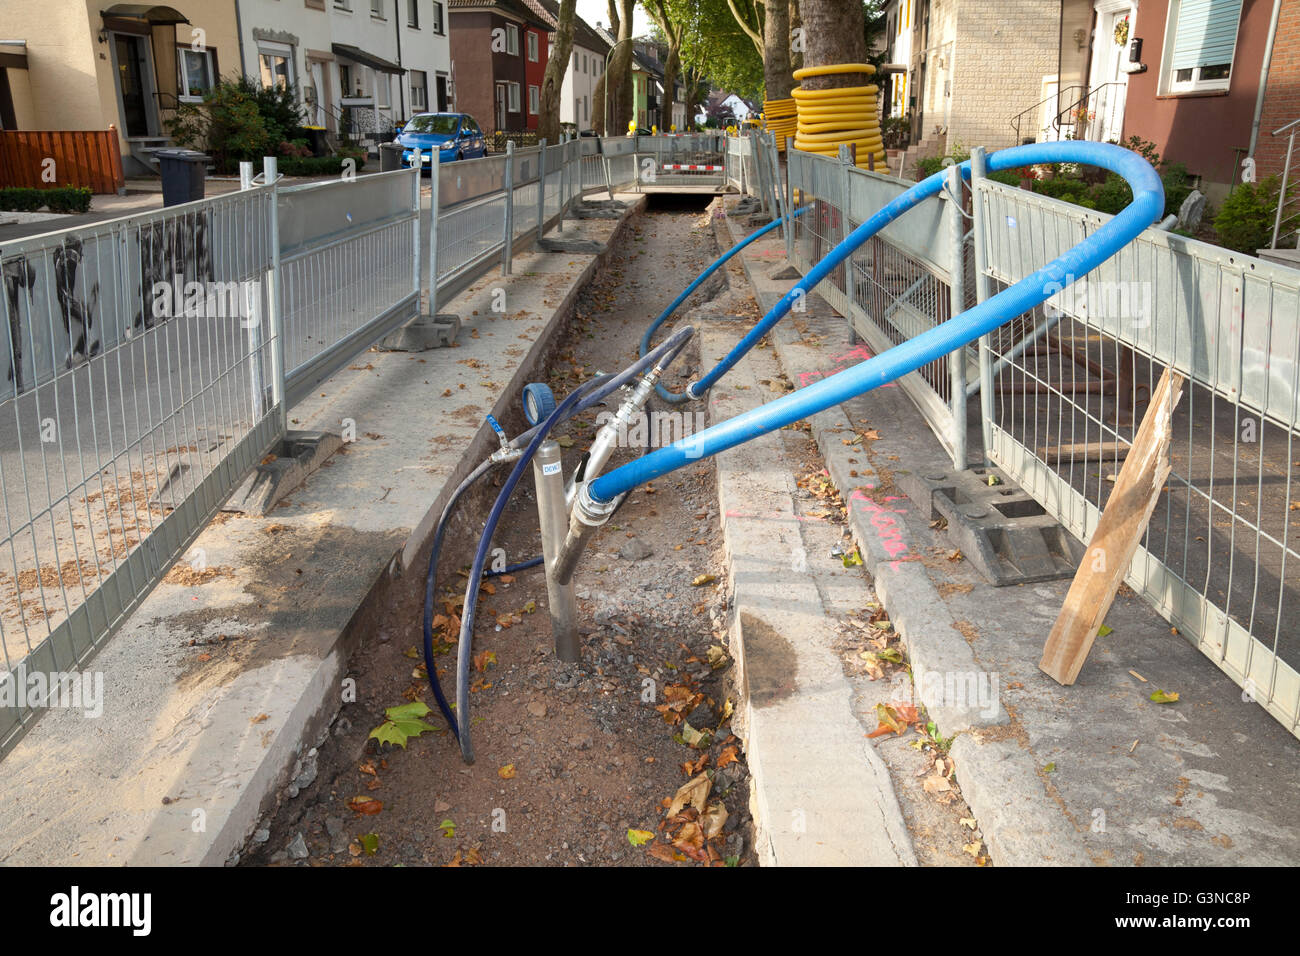 Road barriers along a construction site, renewal of supply lines, Im Telgei street, Dortmund, Ruhr area, North Rhine - Stock Image